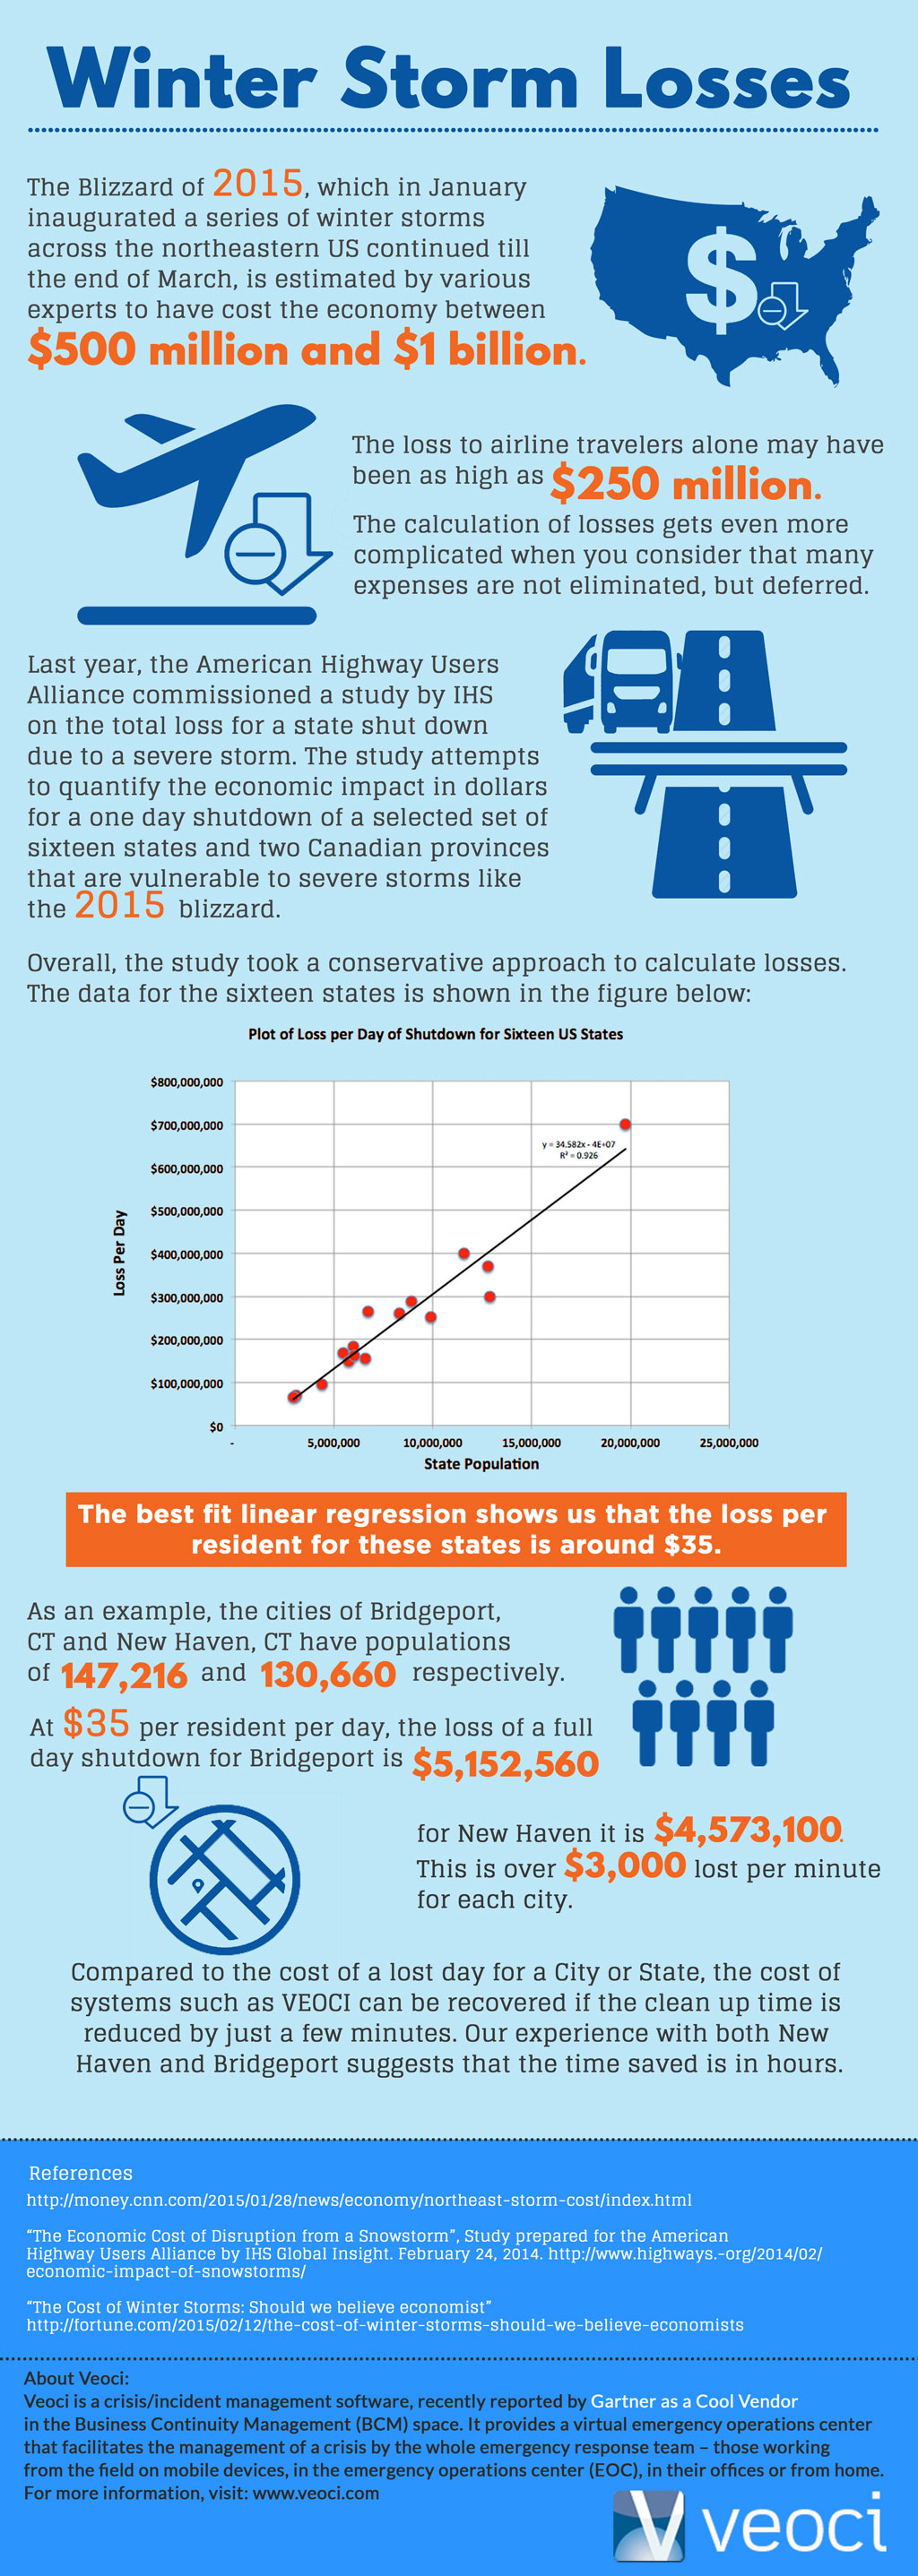 Infographic: Winter Storm Losses - $35 per Resident per Day